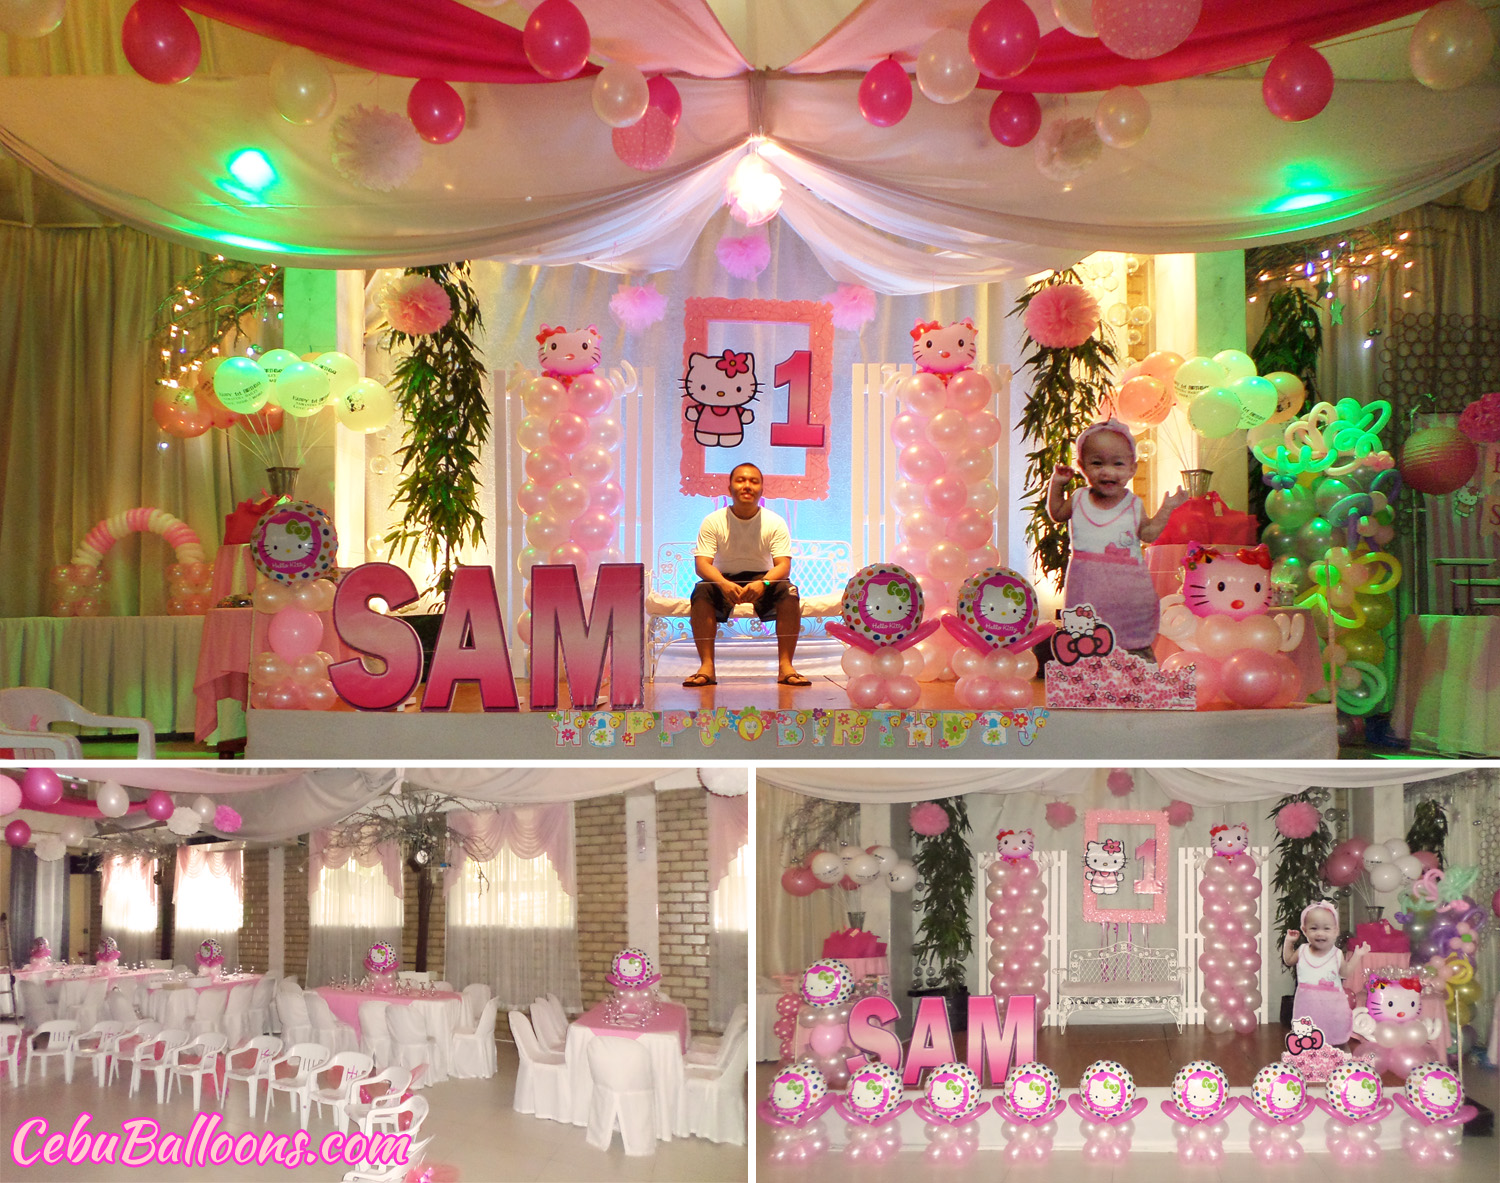 Letter standees cebu balloons and party supplies - Party decorations ideas ...